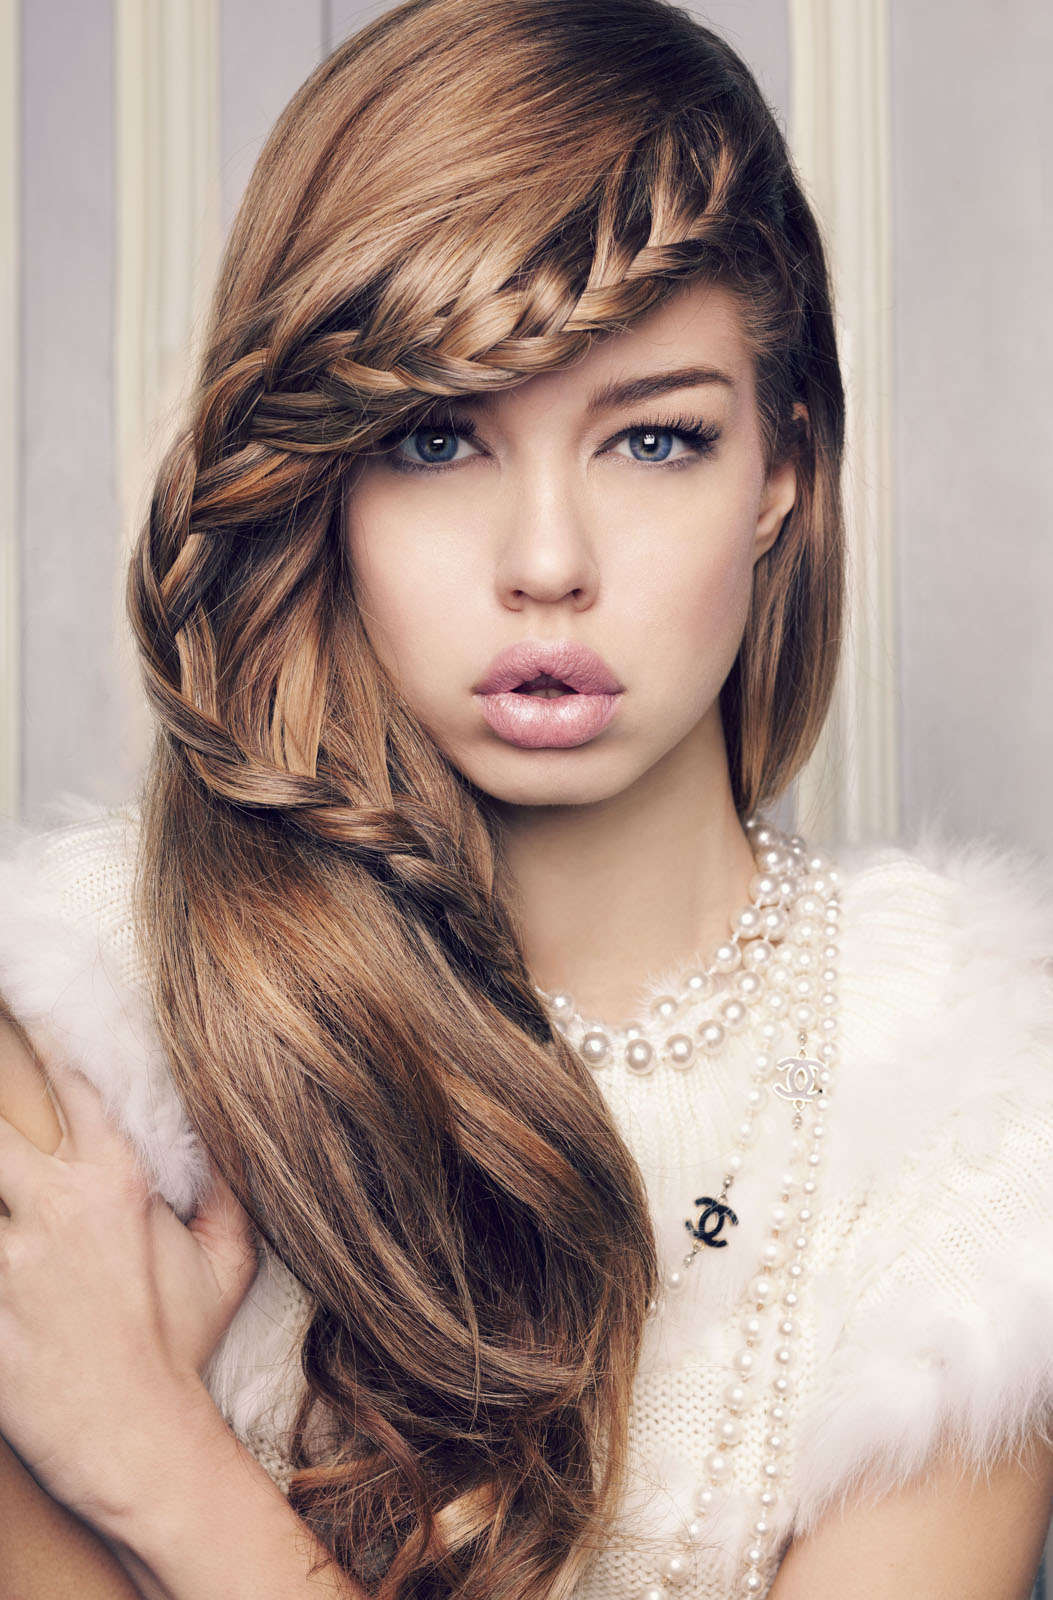 Astounding 24 Gorgeously Creative Braided Hairstyles For Women Styles Weekly Hairstyles For Men Maxibearus